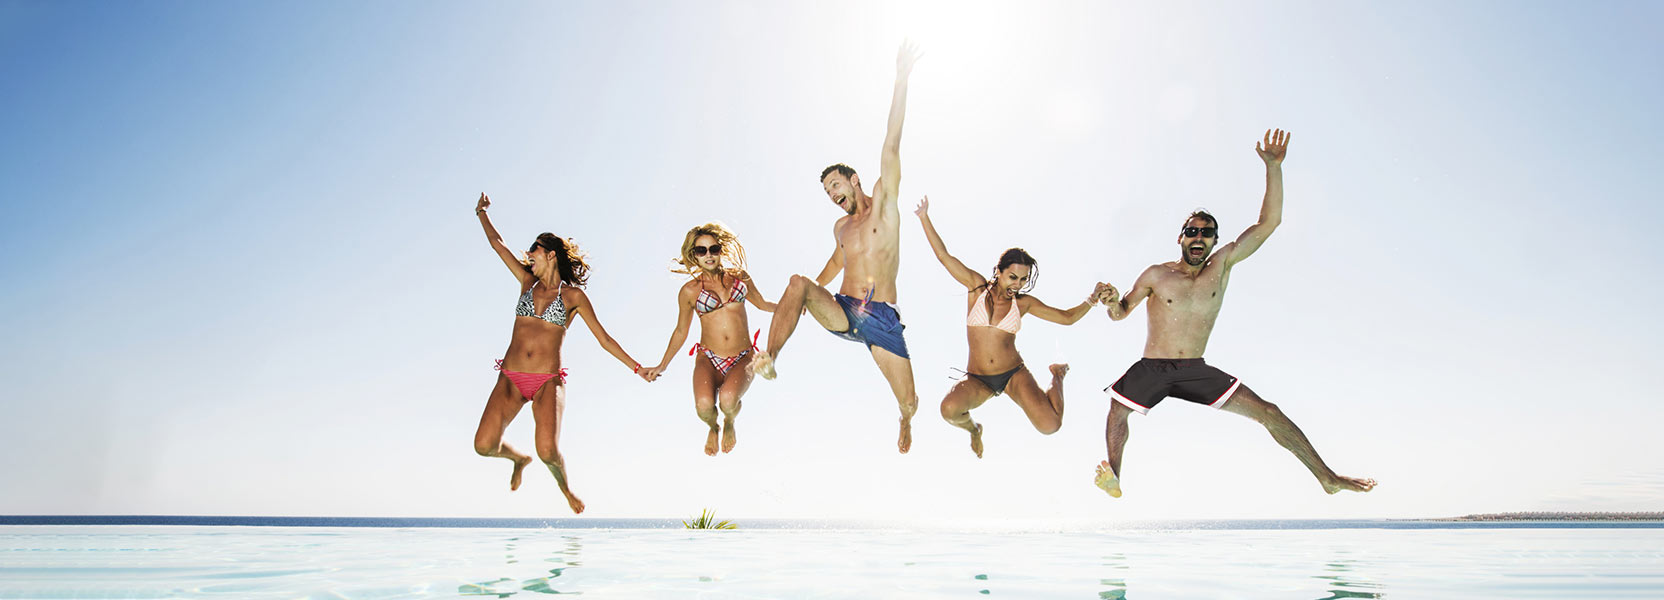 Family-Jumping-in-Pool